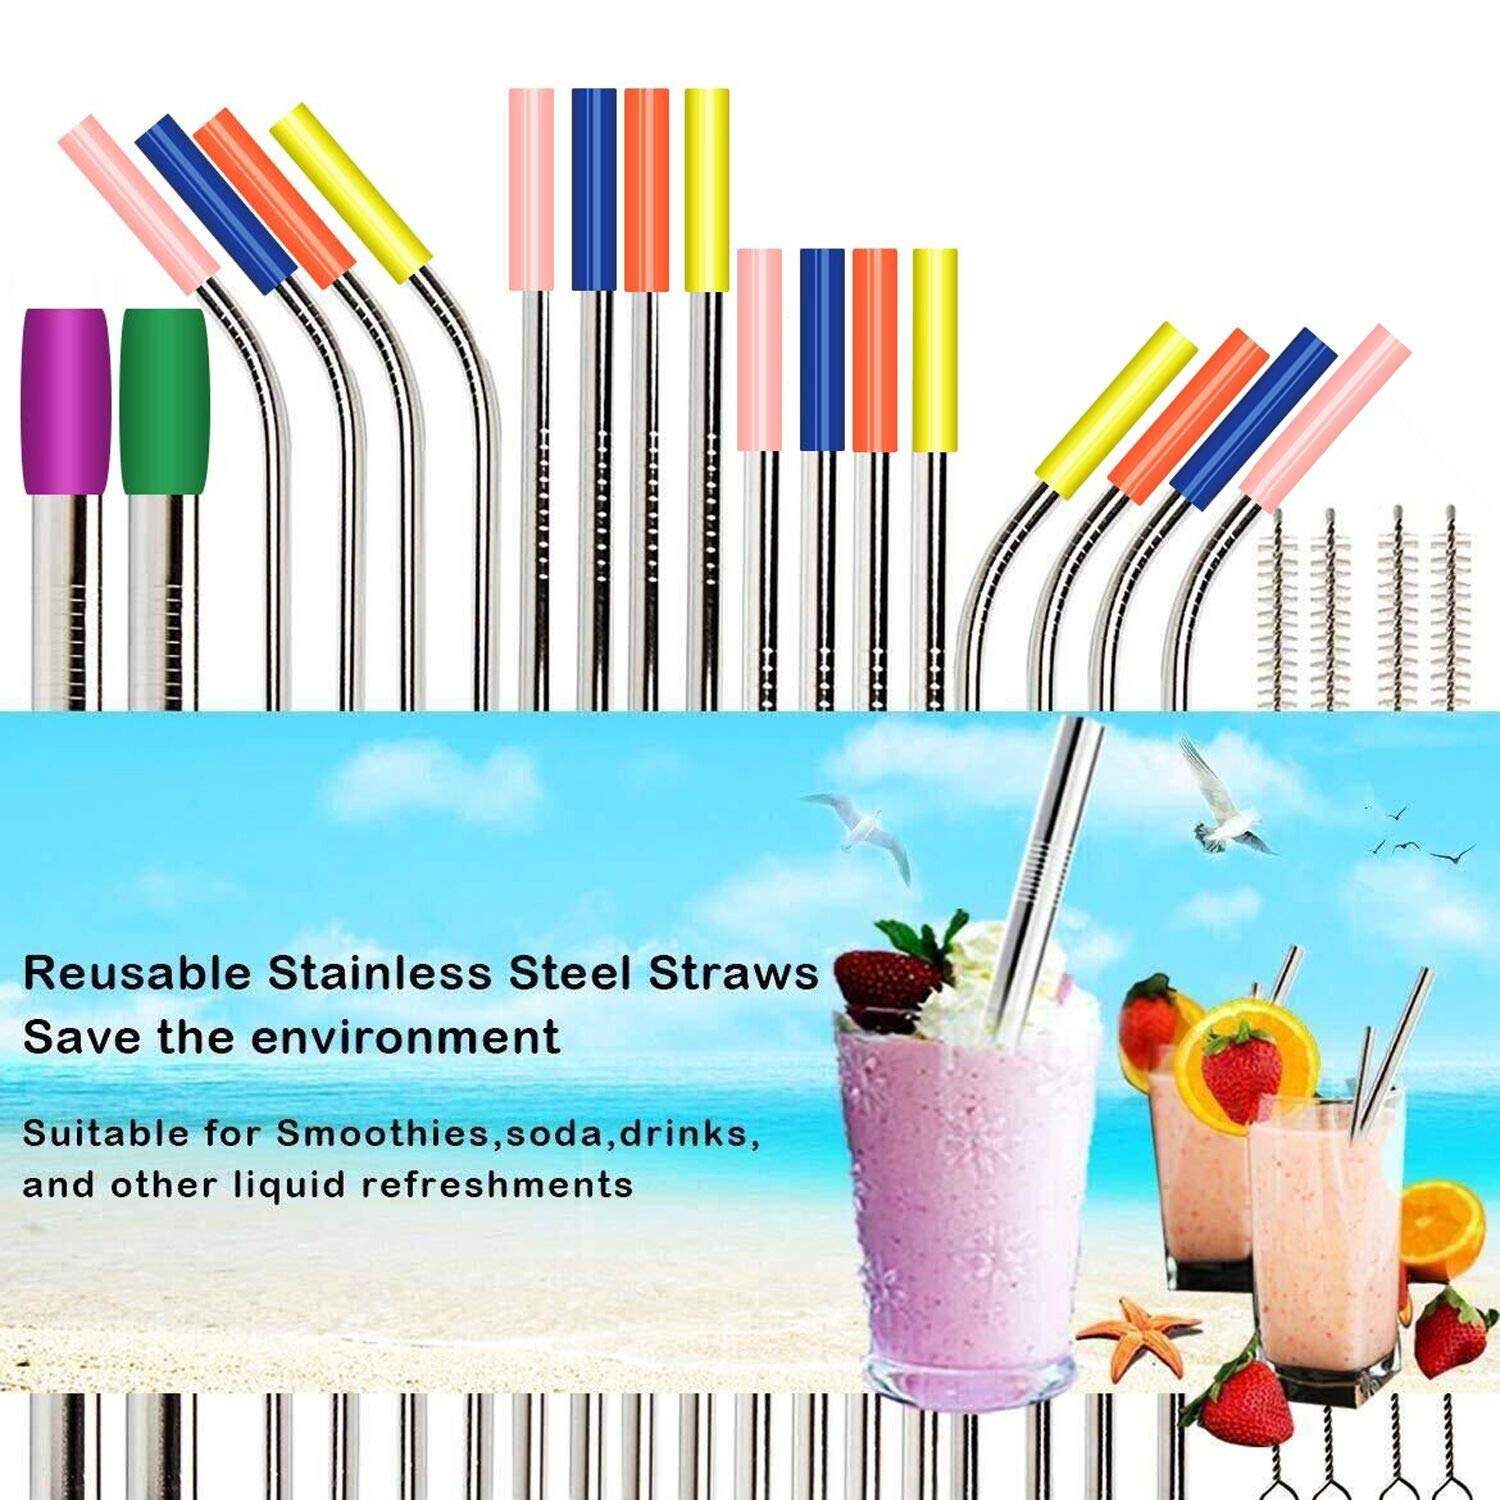 Cappuccino Coffee Stainless Steel Straws 5 Straight   4 Bent   2 Brushes Cocktail 8.5 Drinking Metal Straws Ice Tea Reusable Straws for 20oz 30oz Cold Beverage